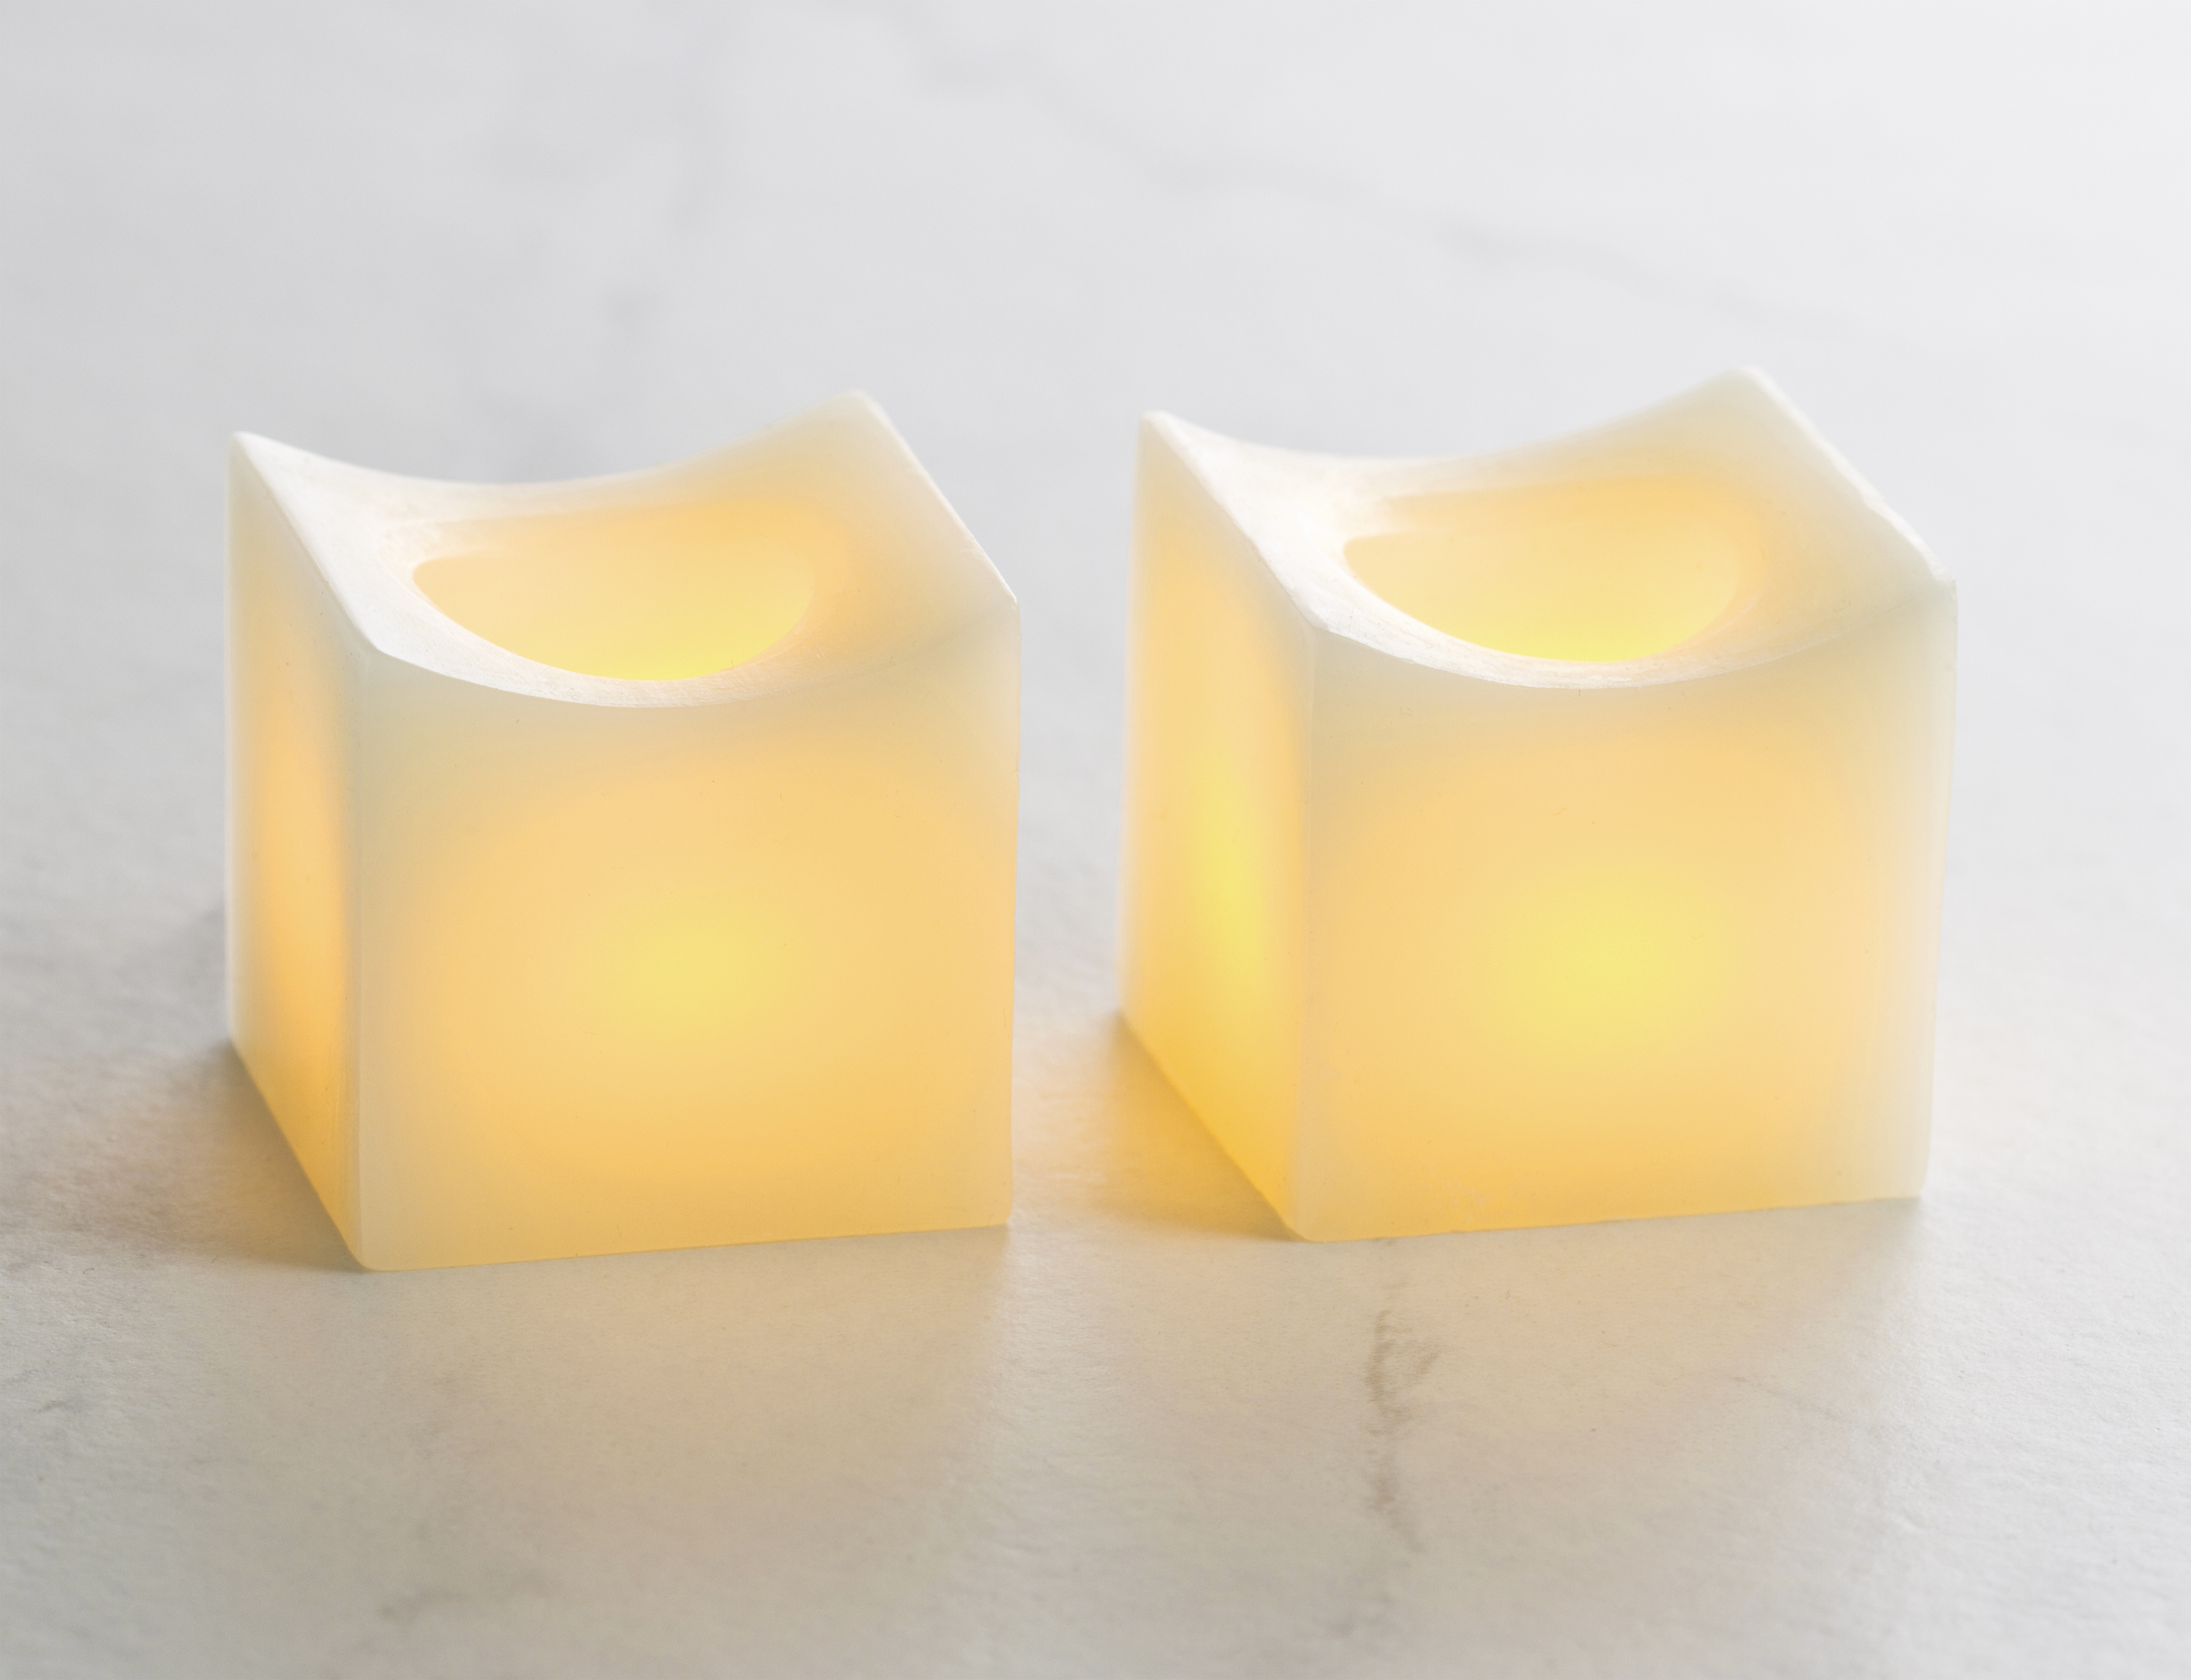 2 Inch Flameless Mini Curved Square Candles - Cream - 2 Pack